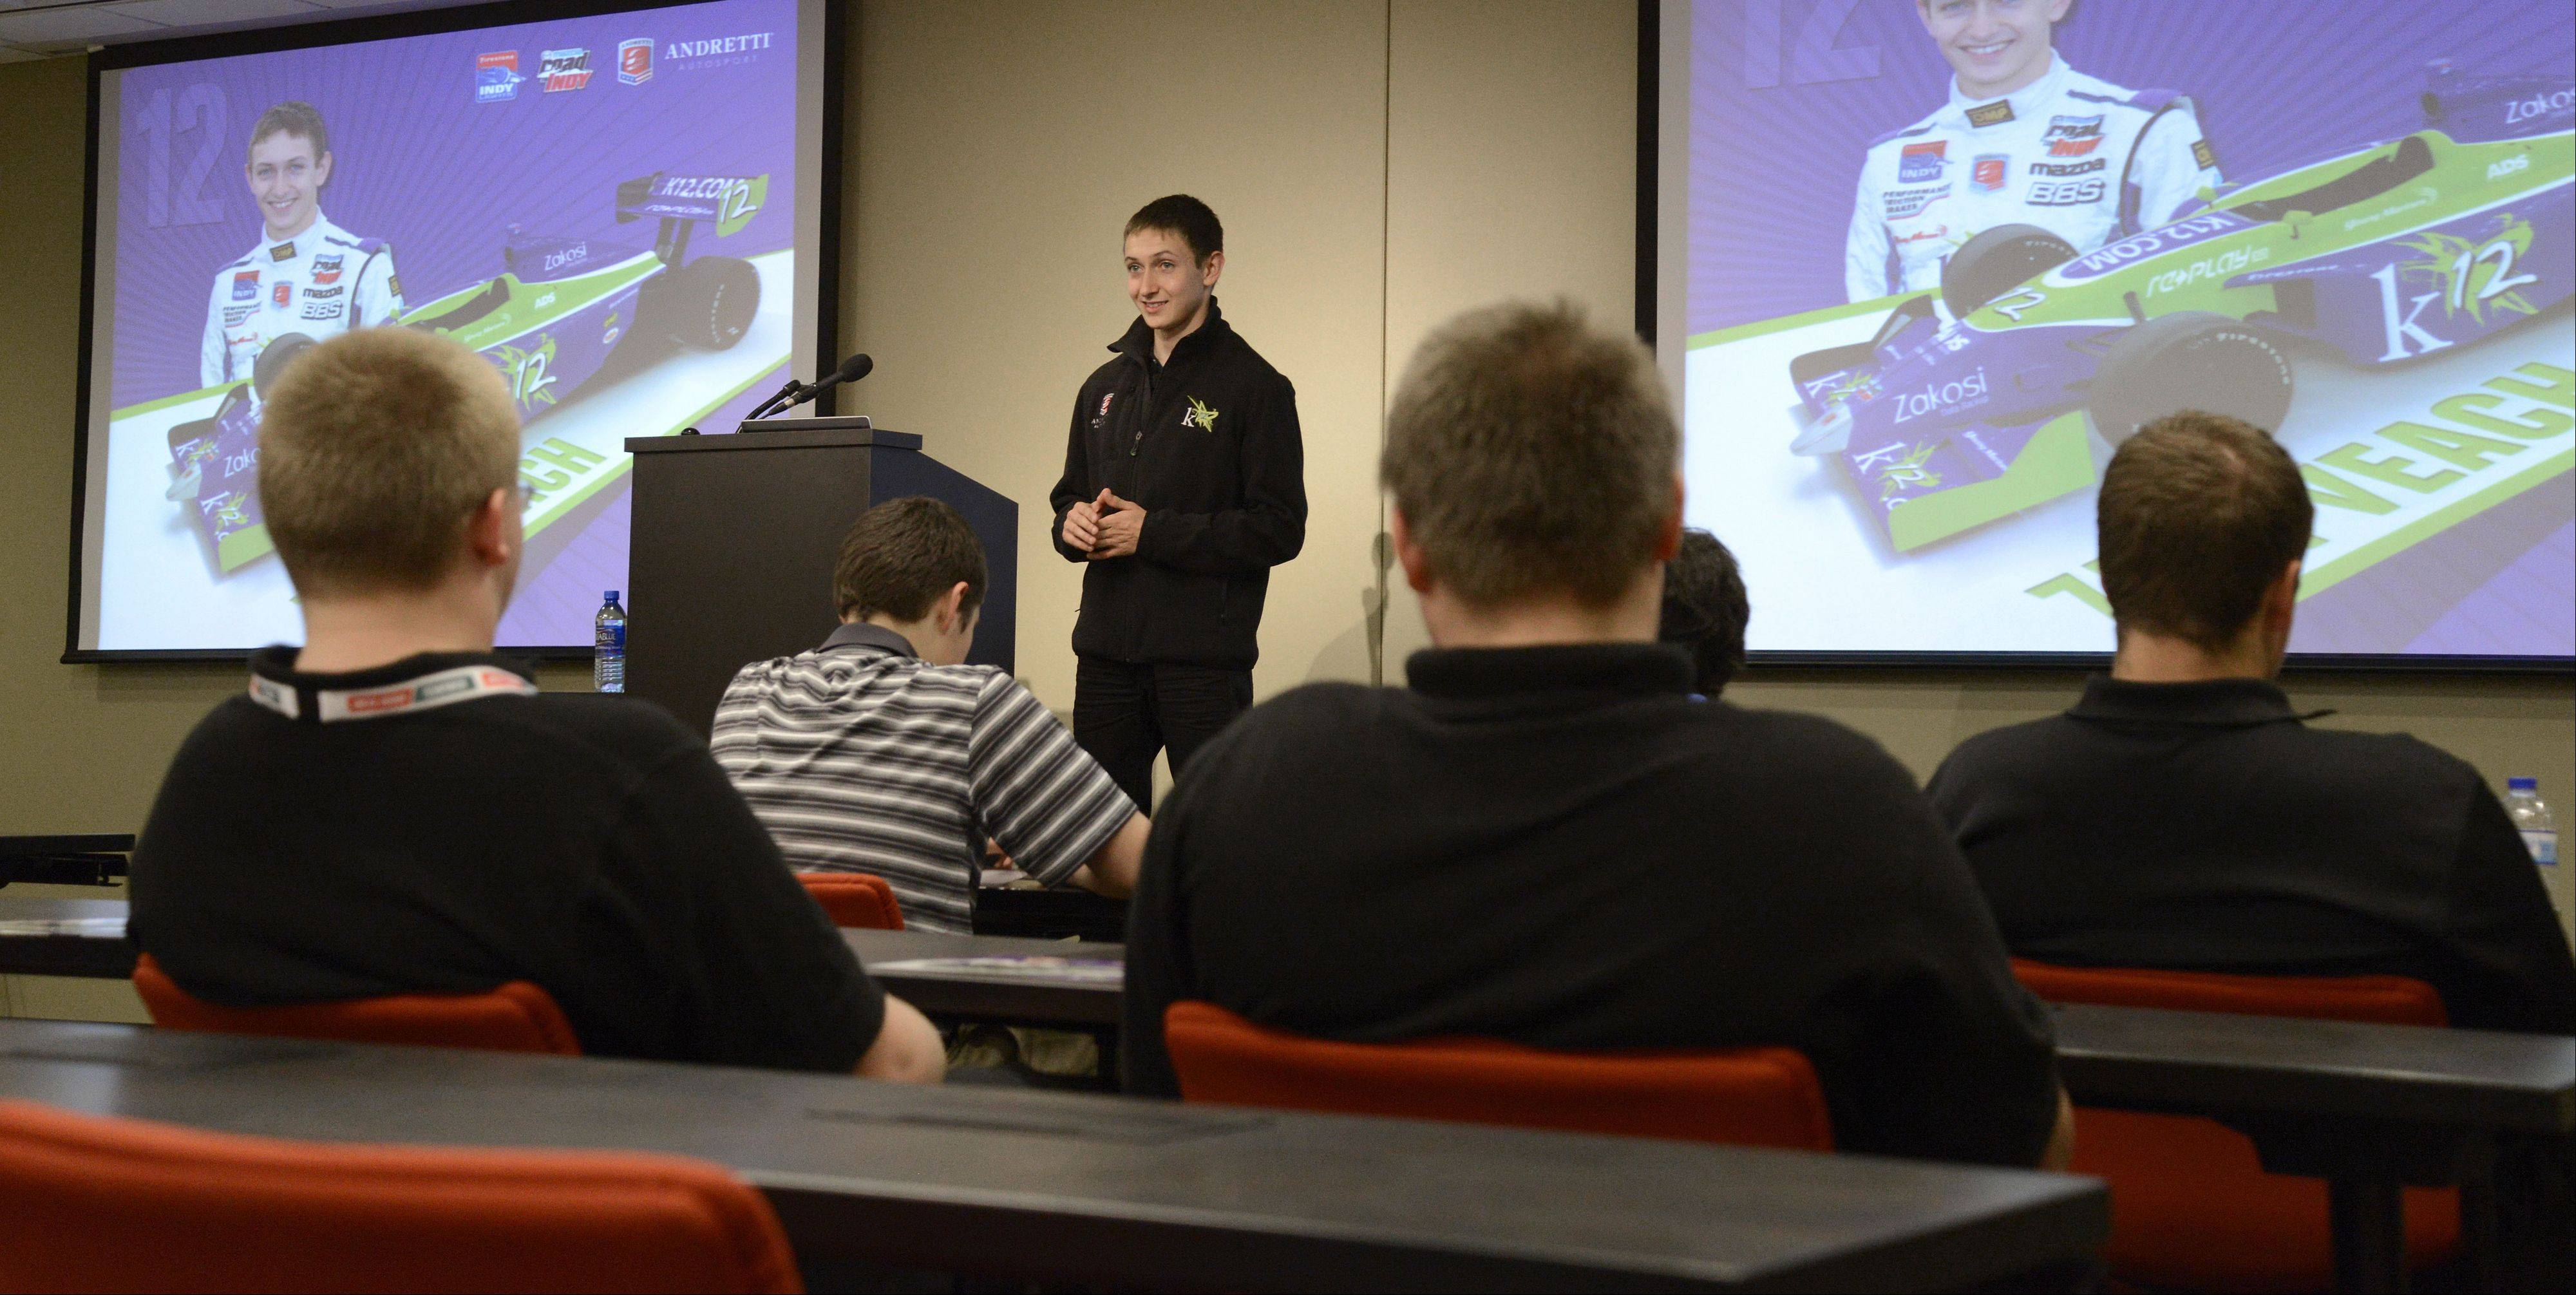 Students from Elk Grove, Buffalo Grove and John Hersey high schools joined manufacturing executives to learn about the industry and listen to 18-year-old IndyCar driver Zach Veach talk about his career during a visit to DMG/Mori Seiki in Hoffman Estates.